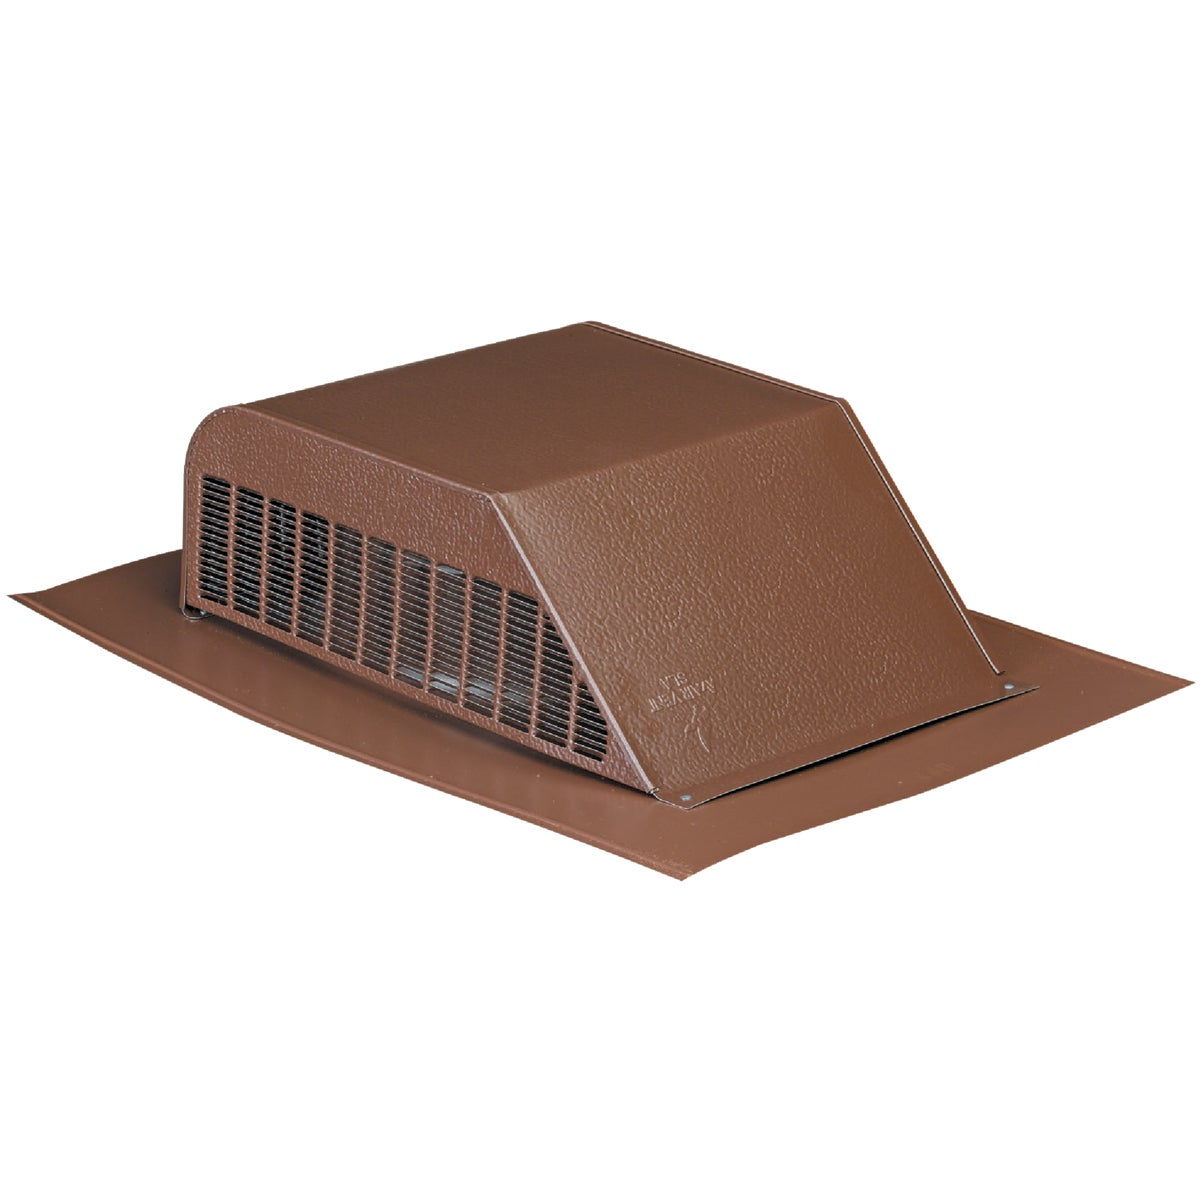 Airhawk 50 In. Galvanized Slant Back Roof Vent, RVG55086